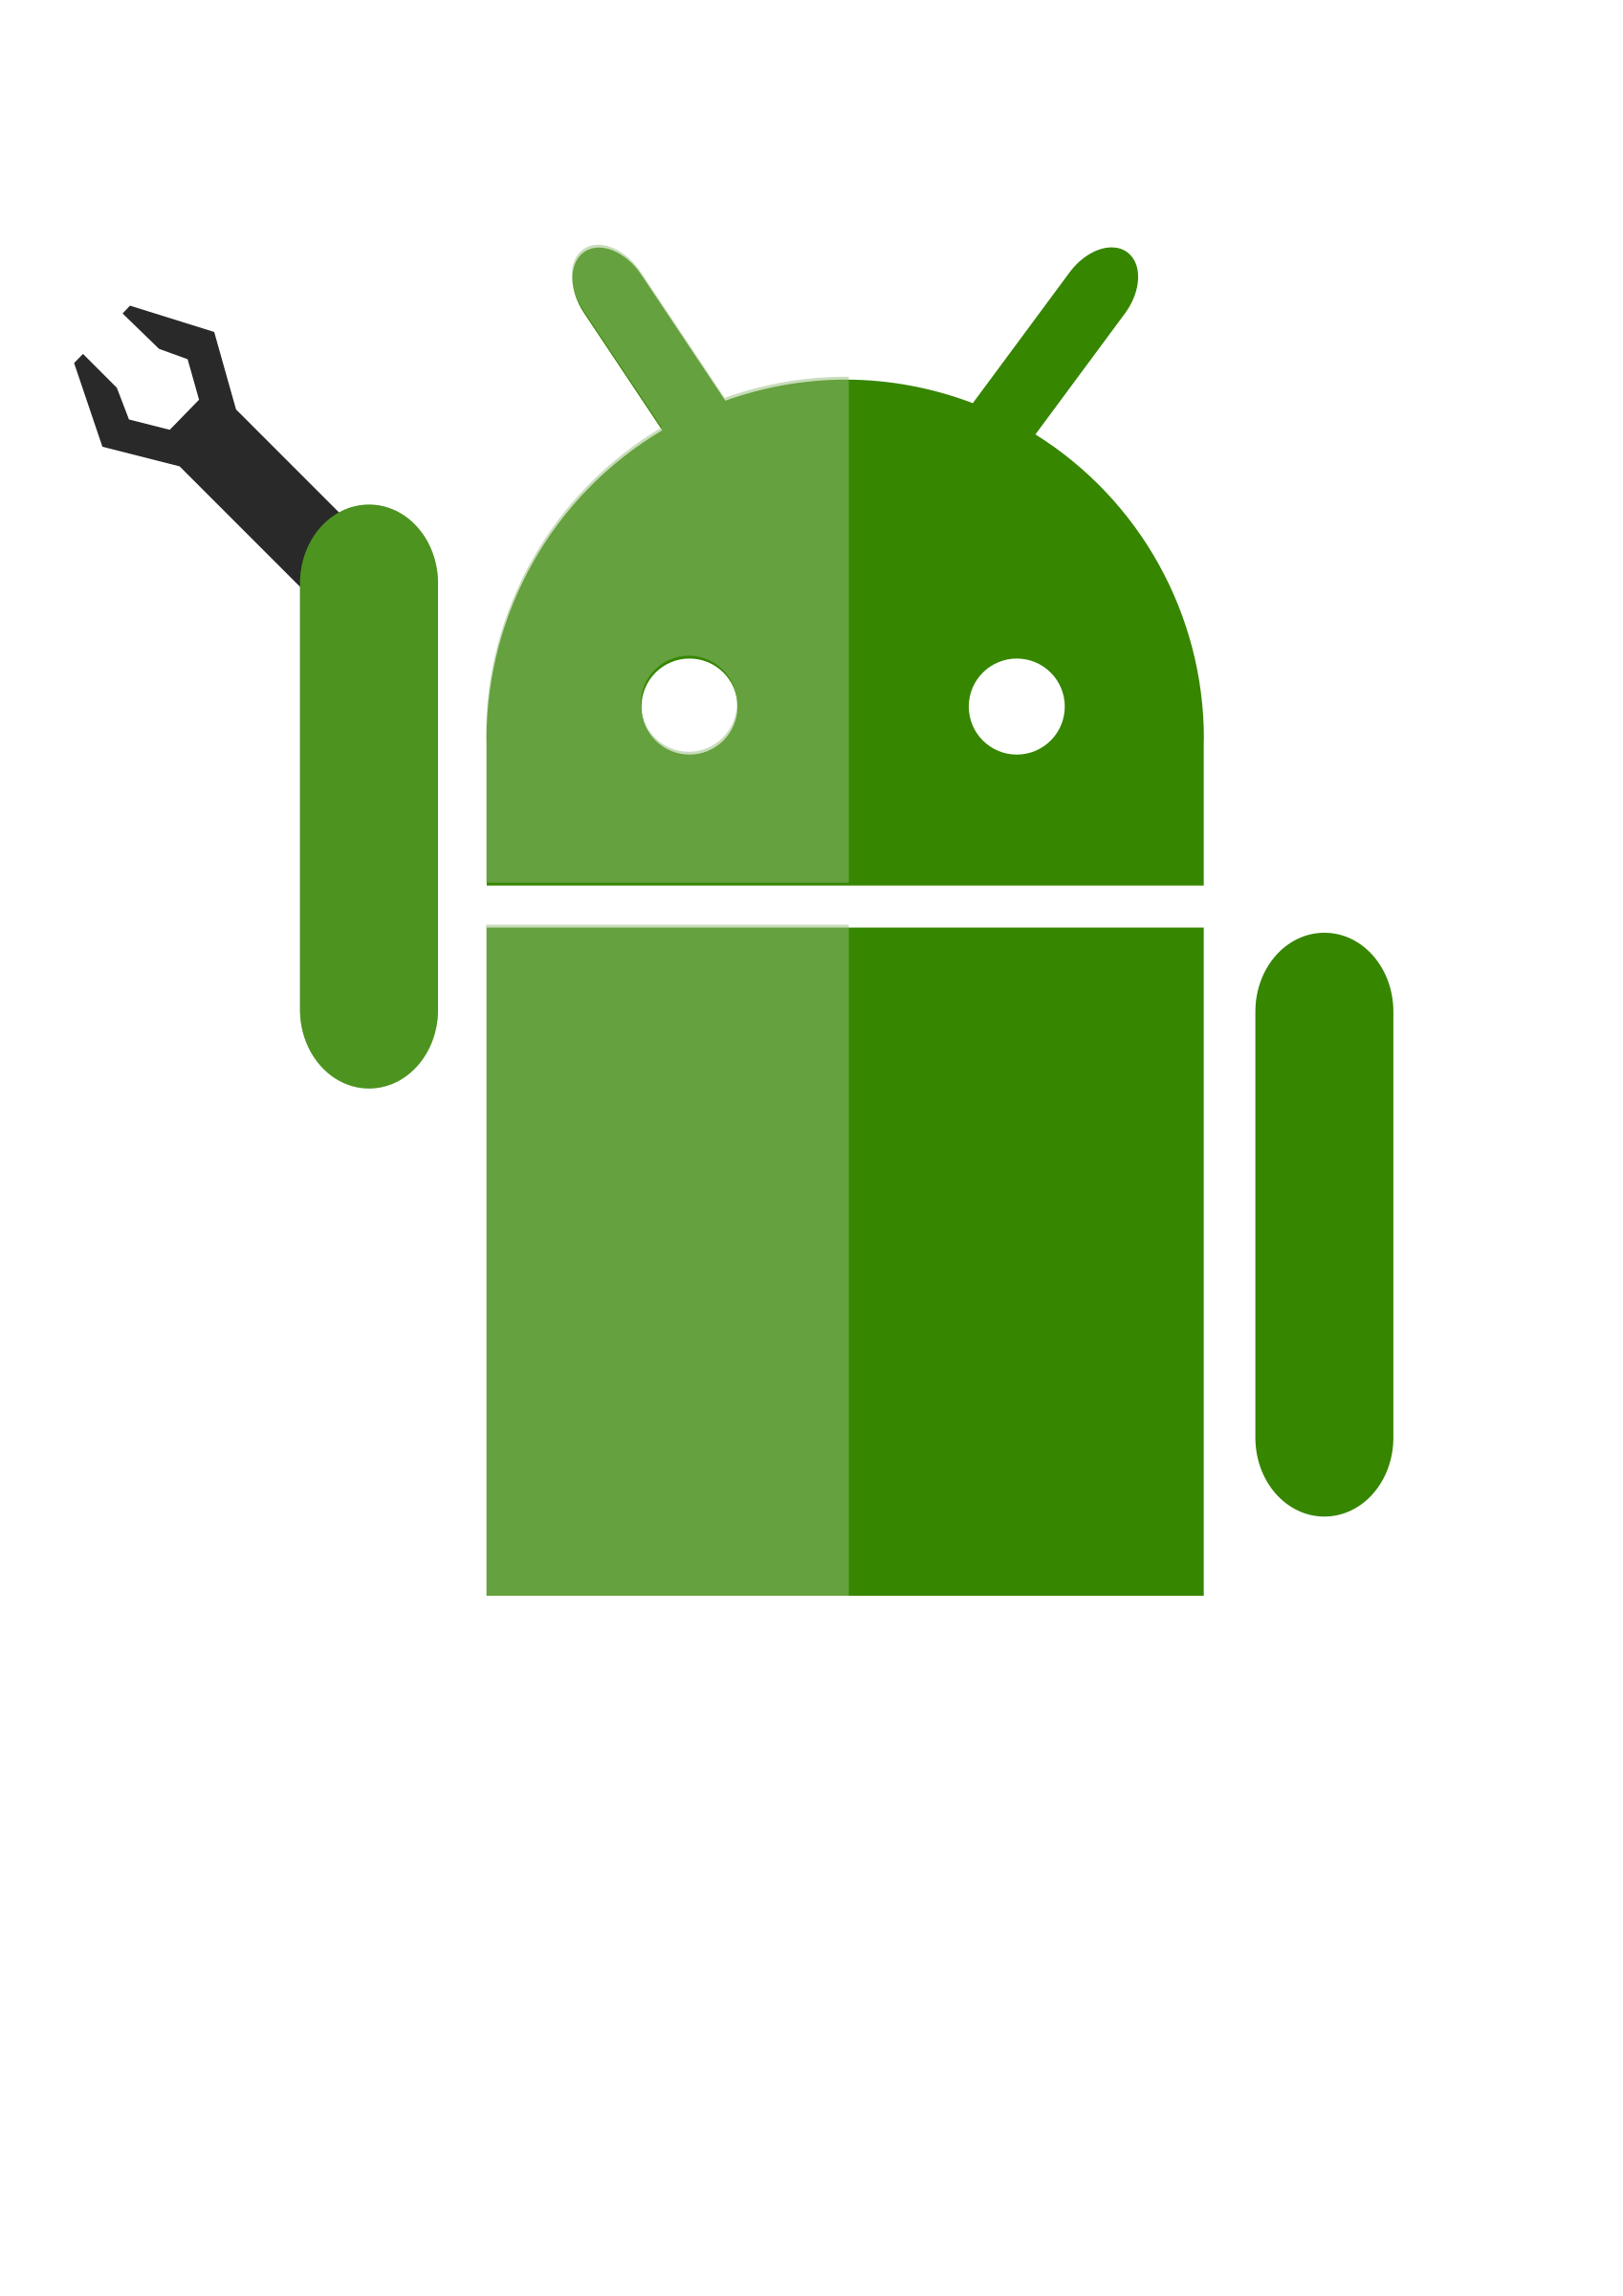 Android Robot Vector Clipart image.